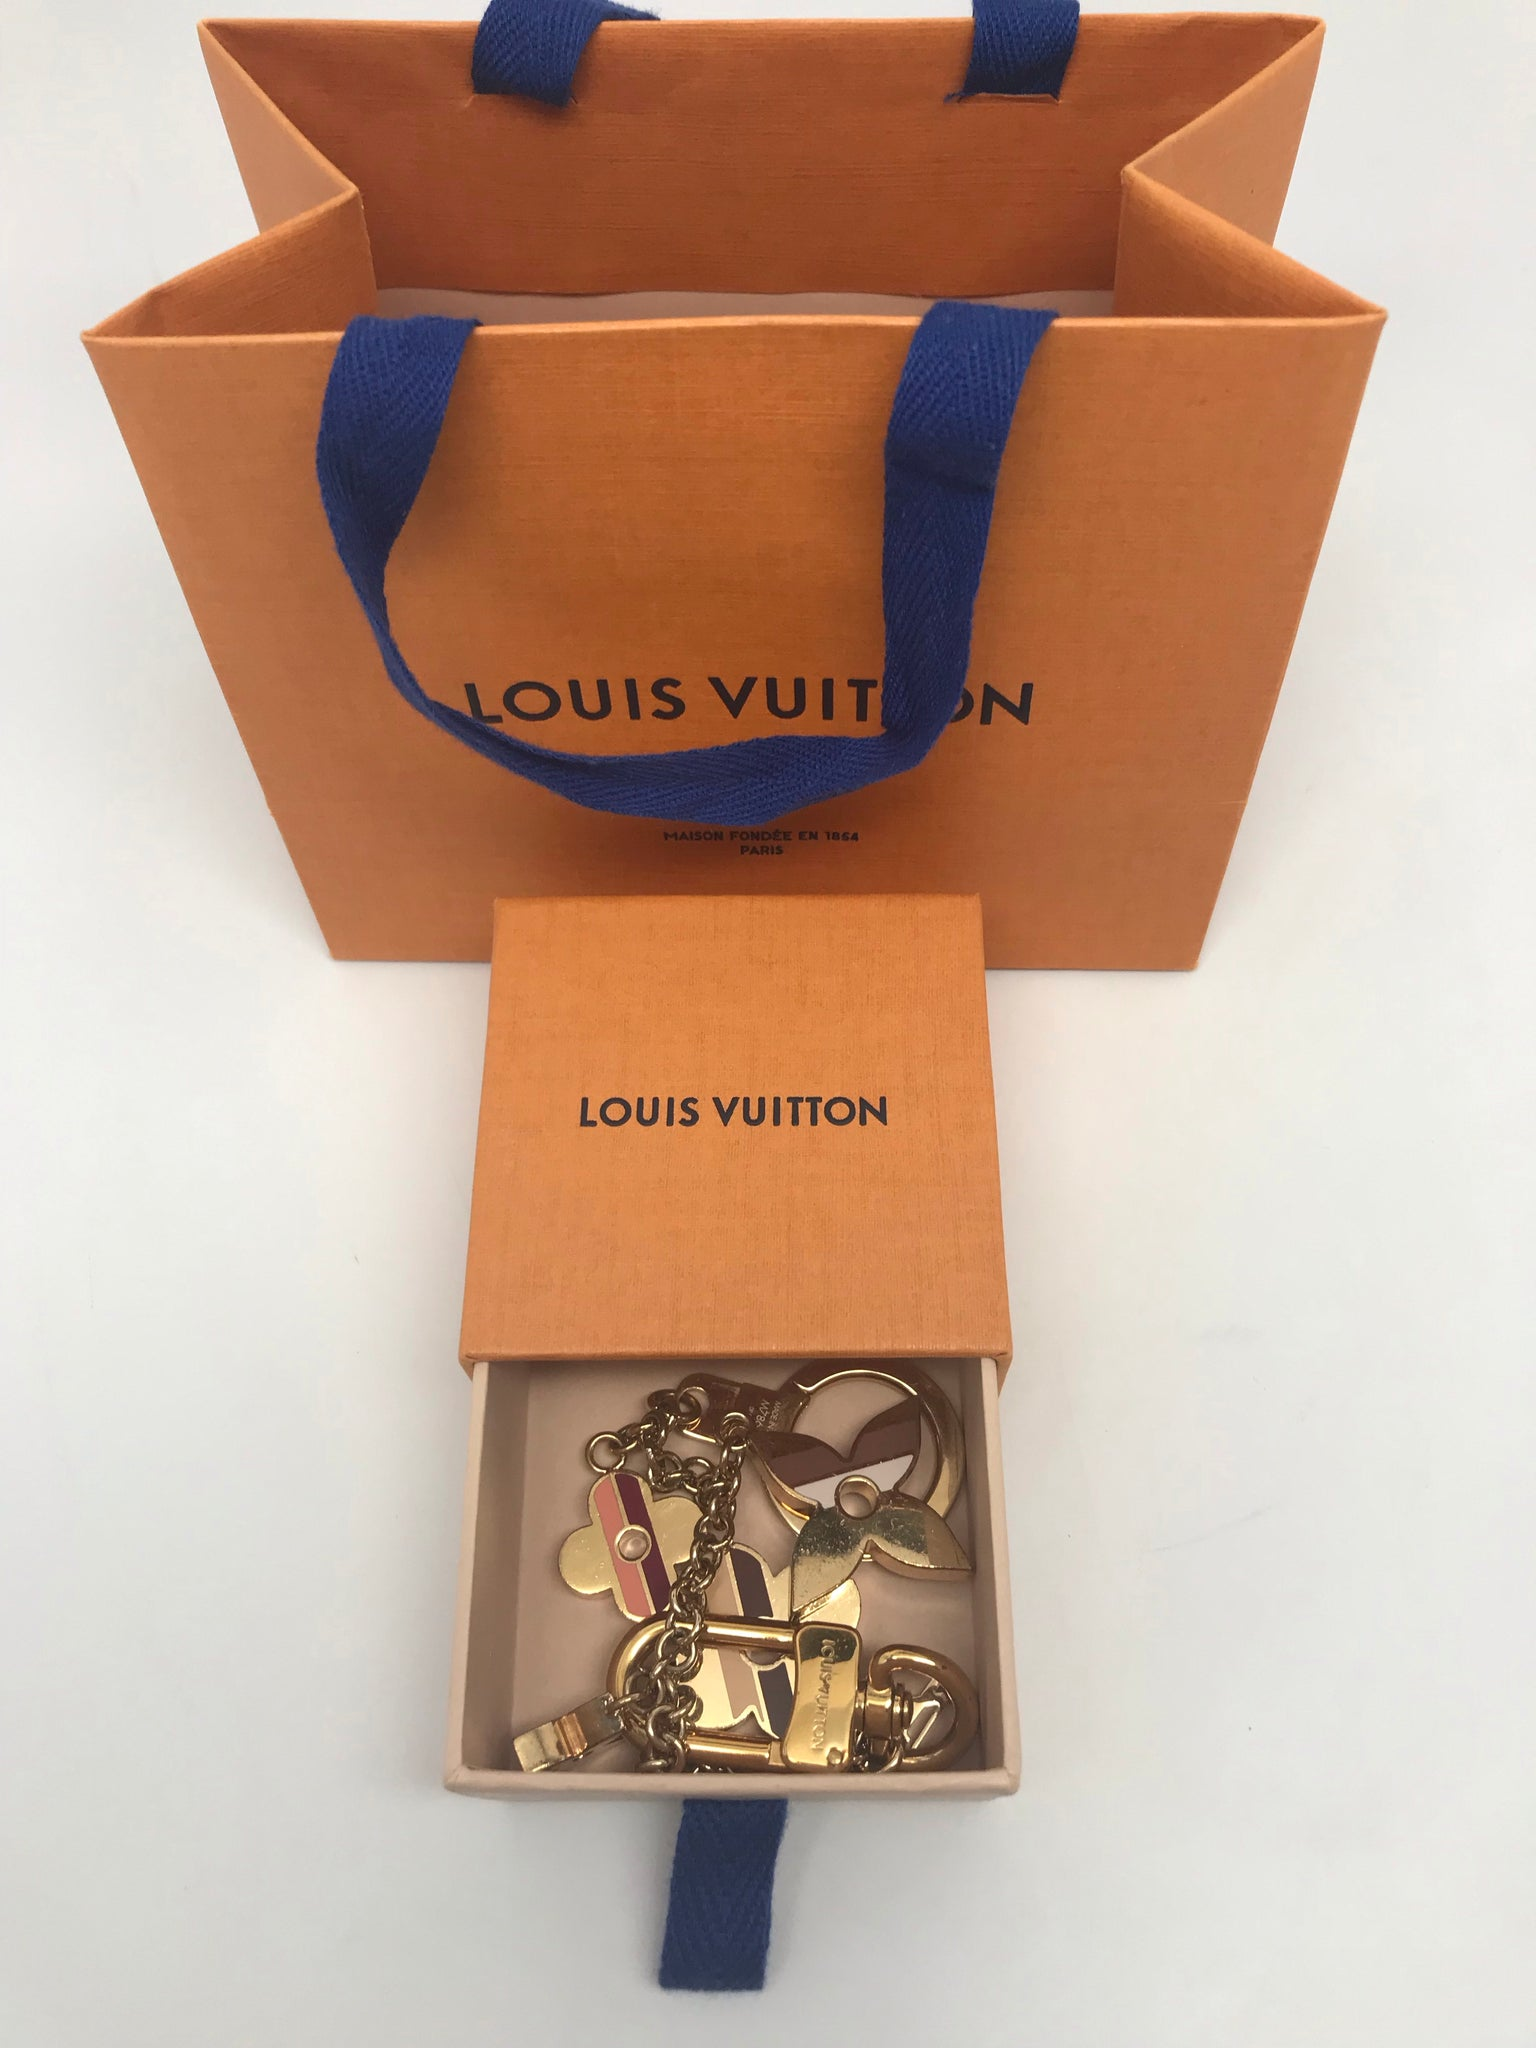 LOUIS VUITTON STRIPES FLOWERS BAG CHARM